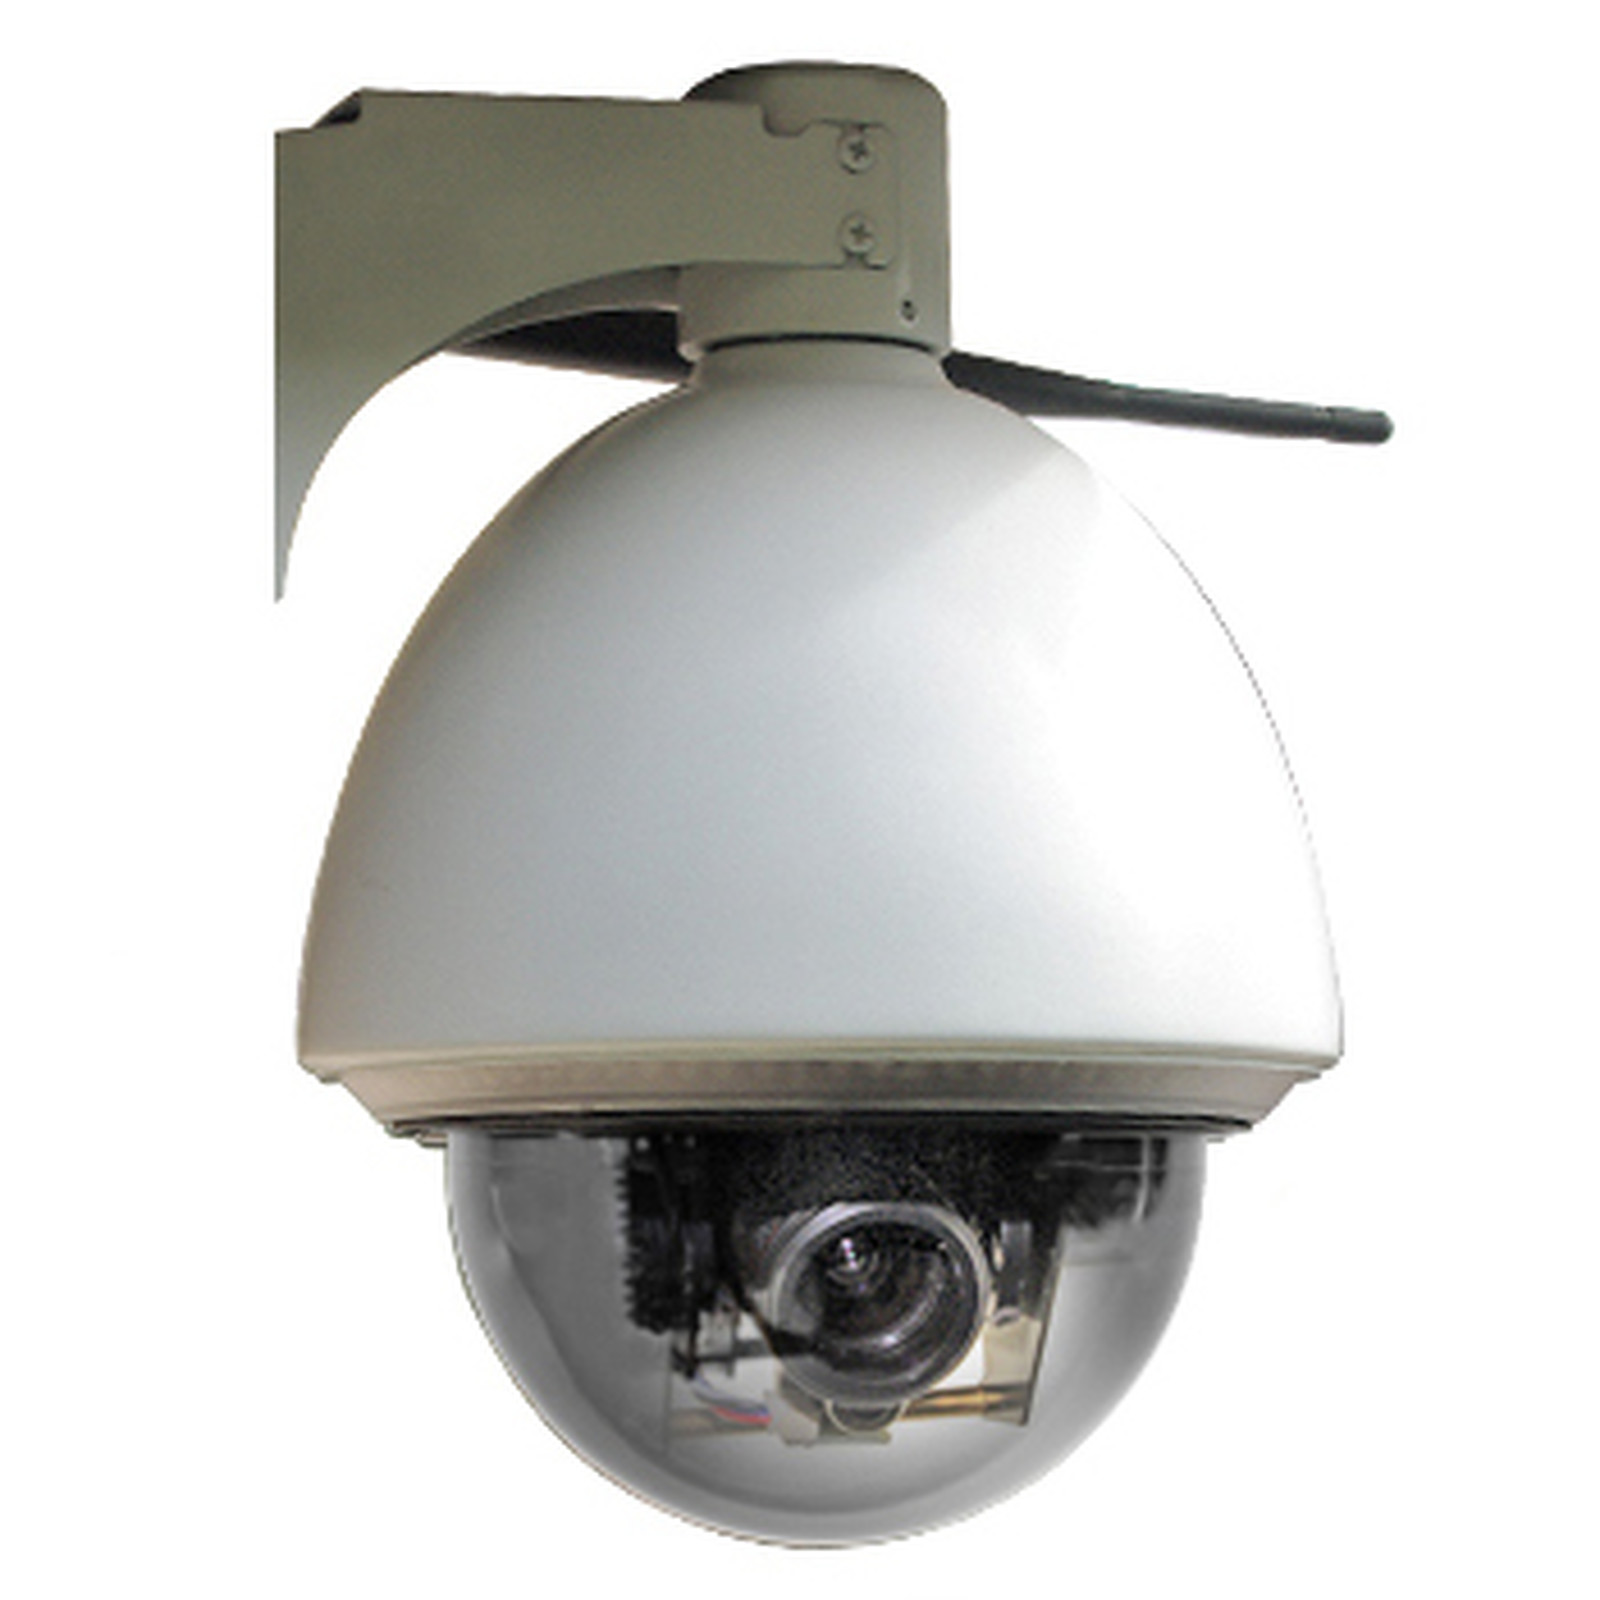 Camera Exterieur Motorisee Wifi Bluestork Ip Outdoor Cam Bs Cam Out R Caméra Ip